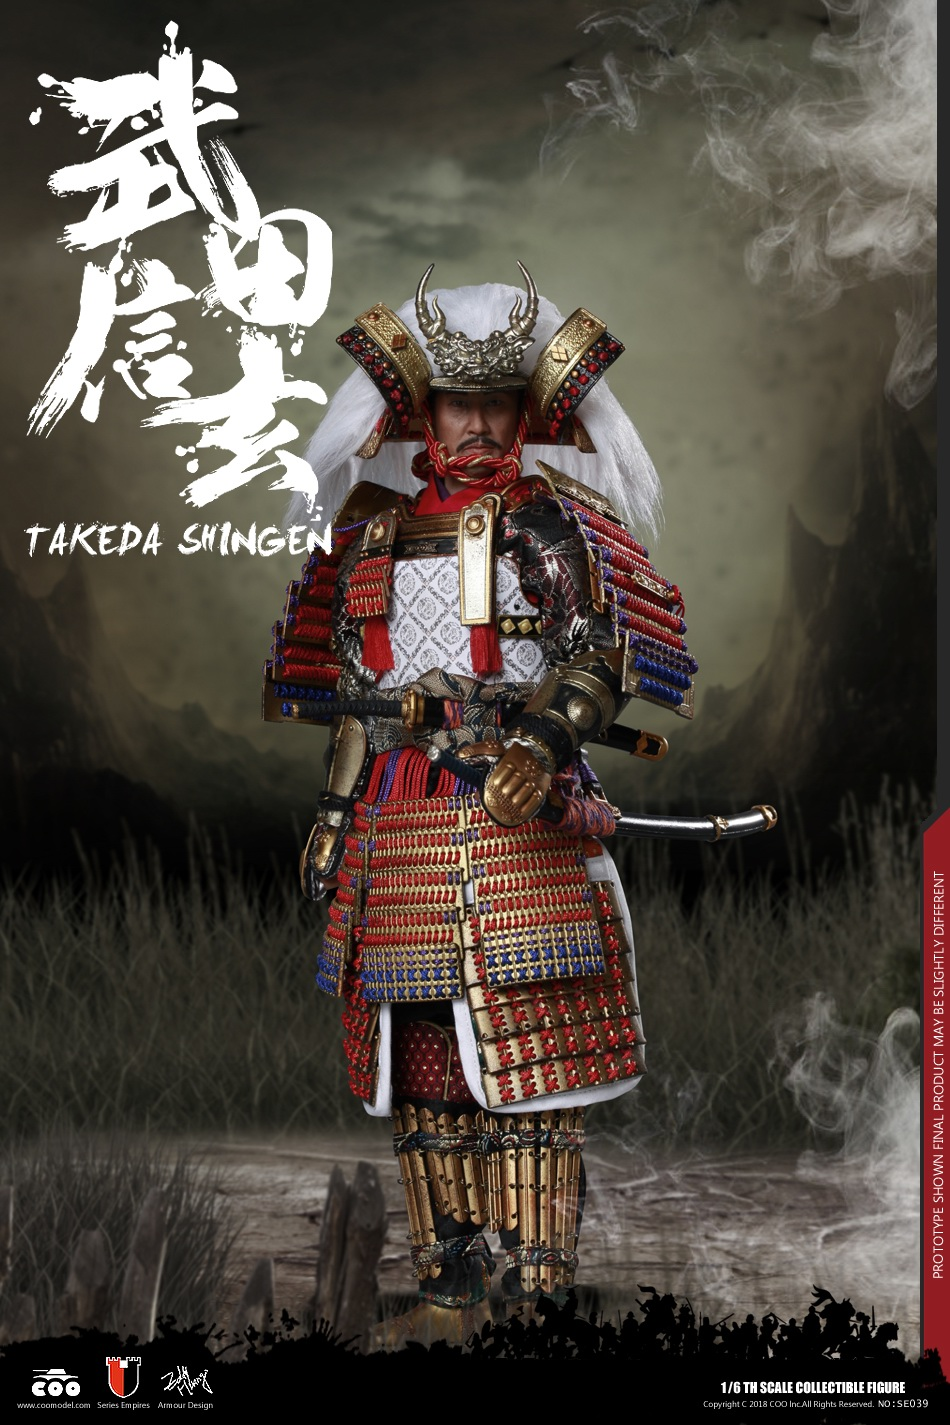 NEW PRODUCT: COOMODEL New: Empire Series Takeda Shingen 183755ng1i11ni0fslqkqx